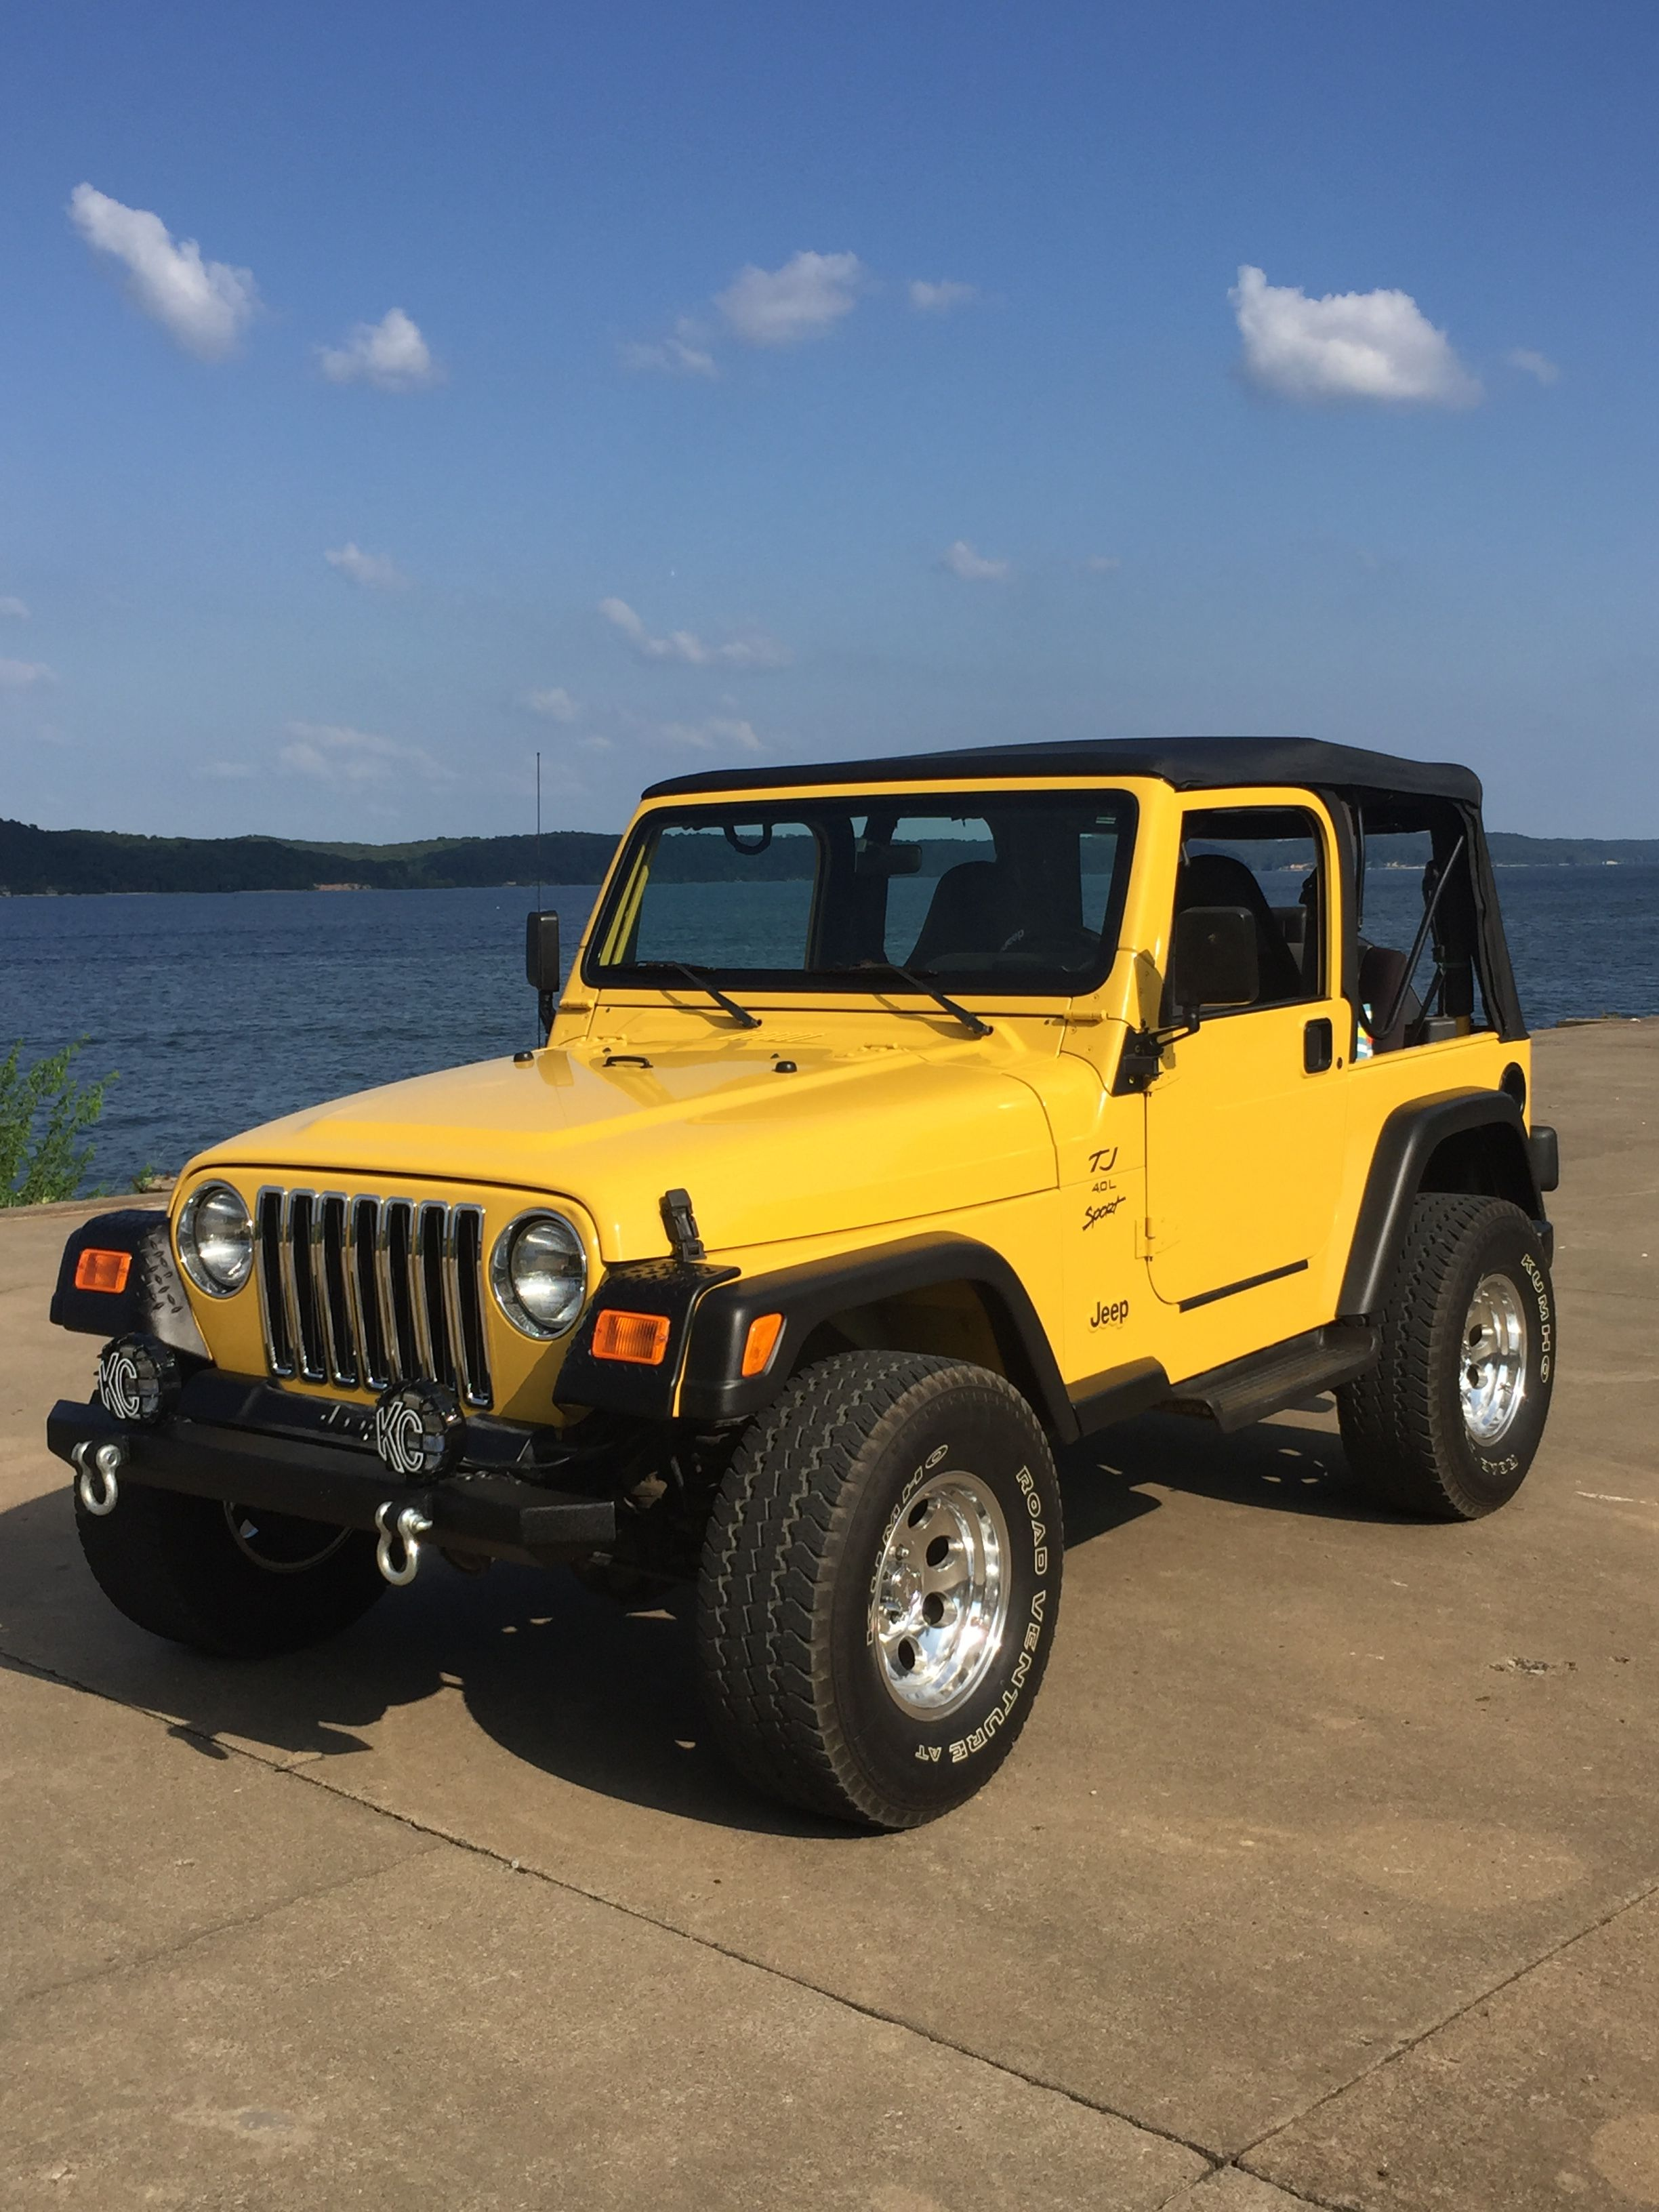 my 2000 tj sport luv my yellow jeep jeep jeep cars. Black Bedroom Furniture Sets. Home Design Ideas